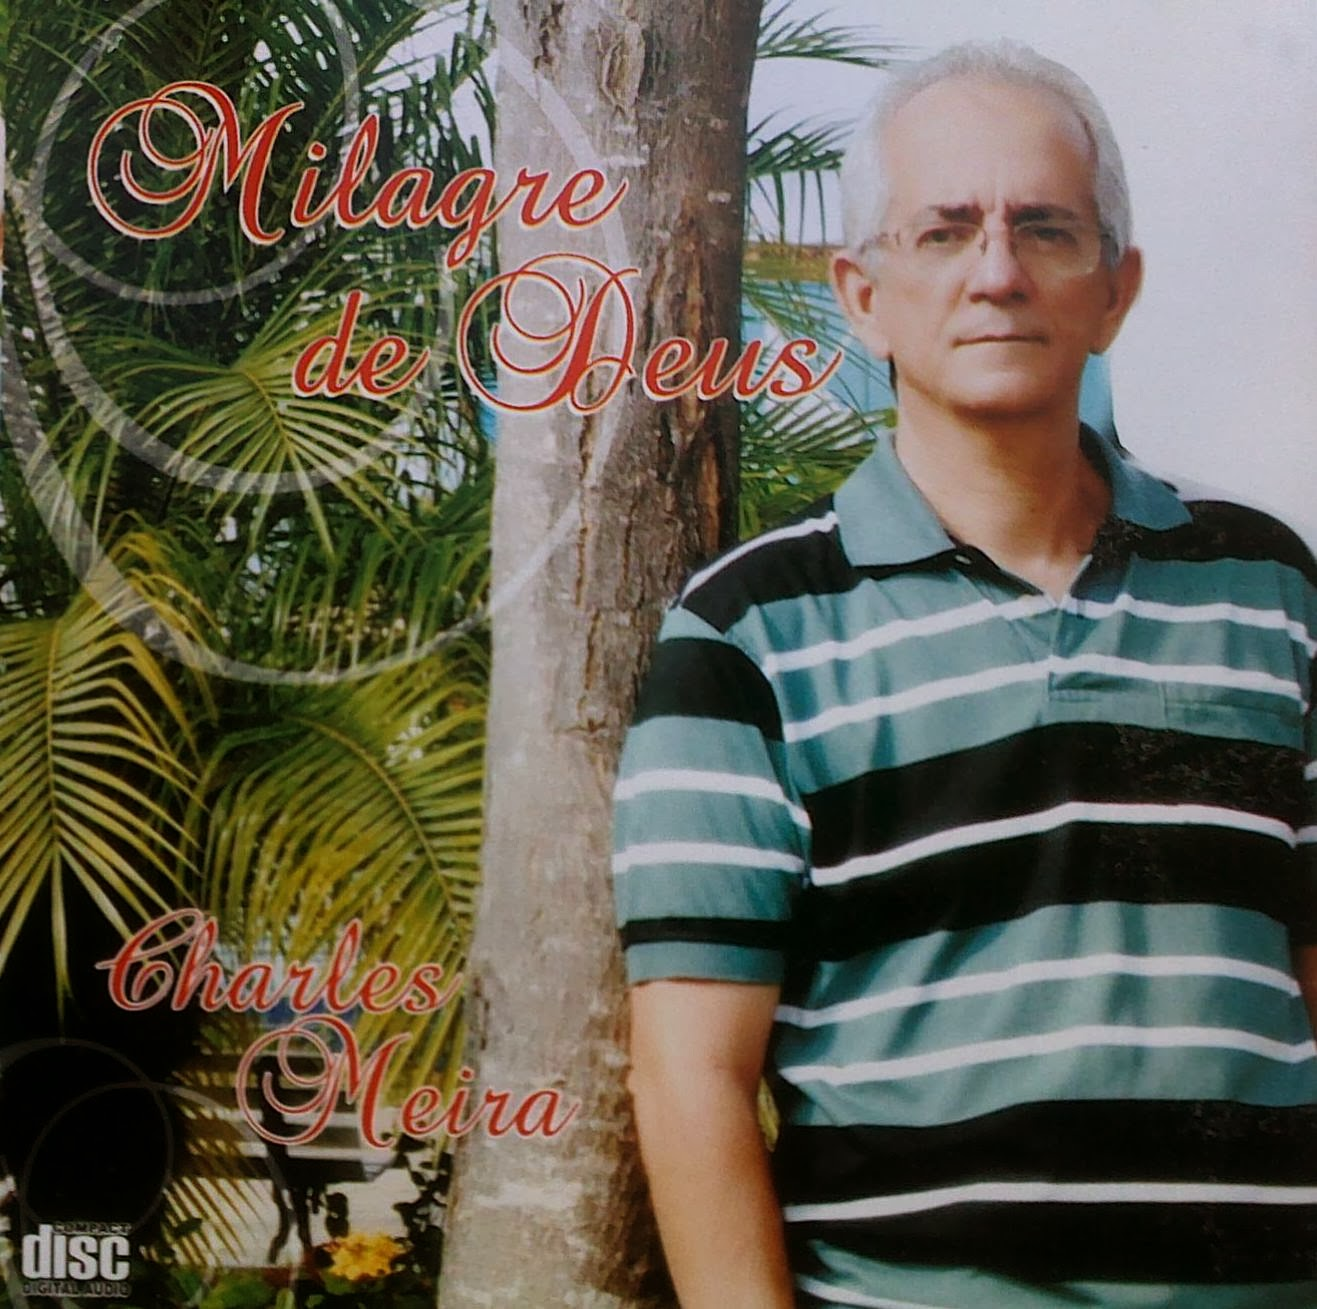 "Capa do CD ""Milagre de Deus"" do cantor Charles Meira"